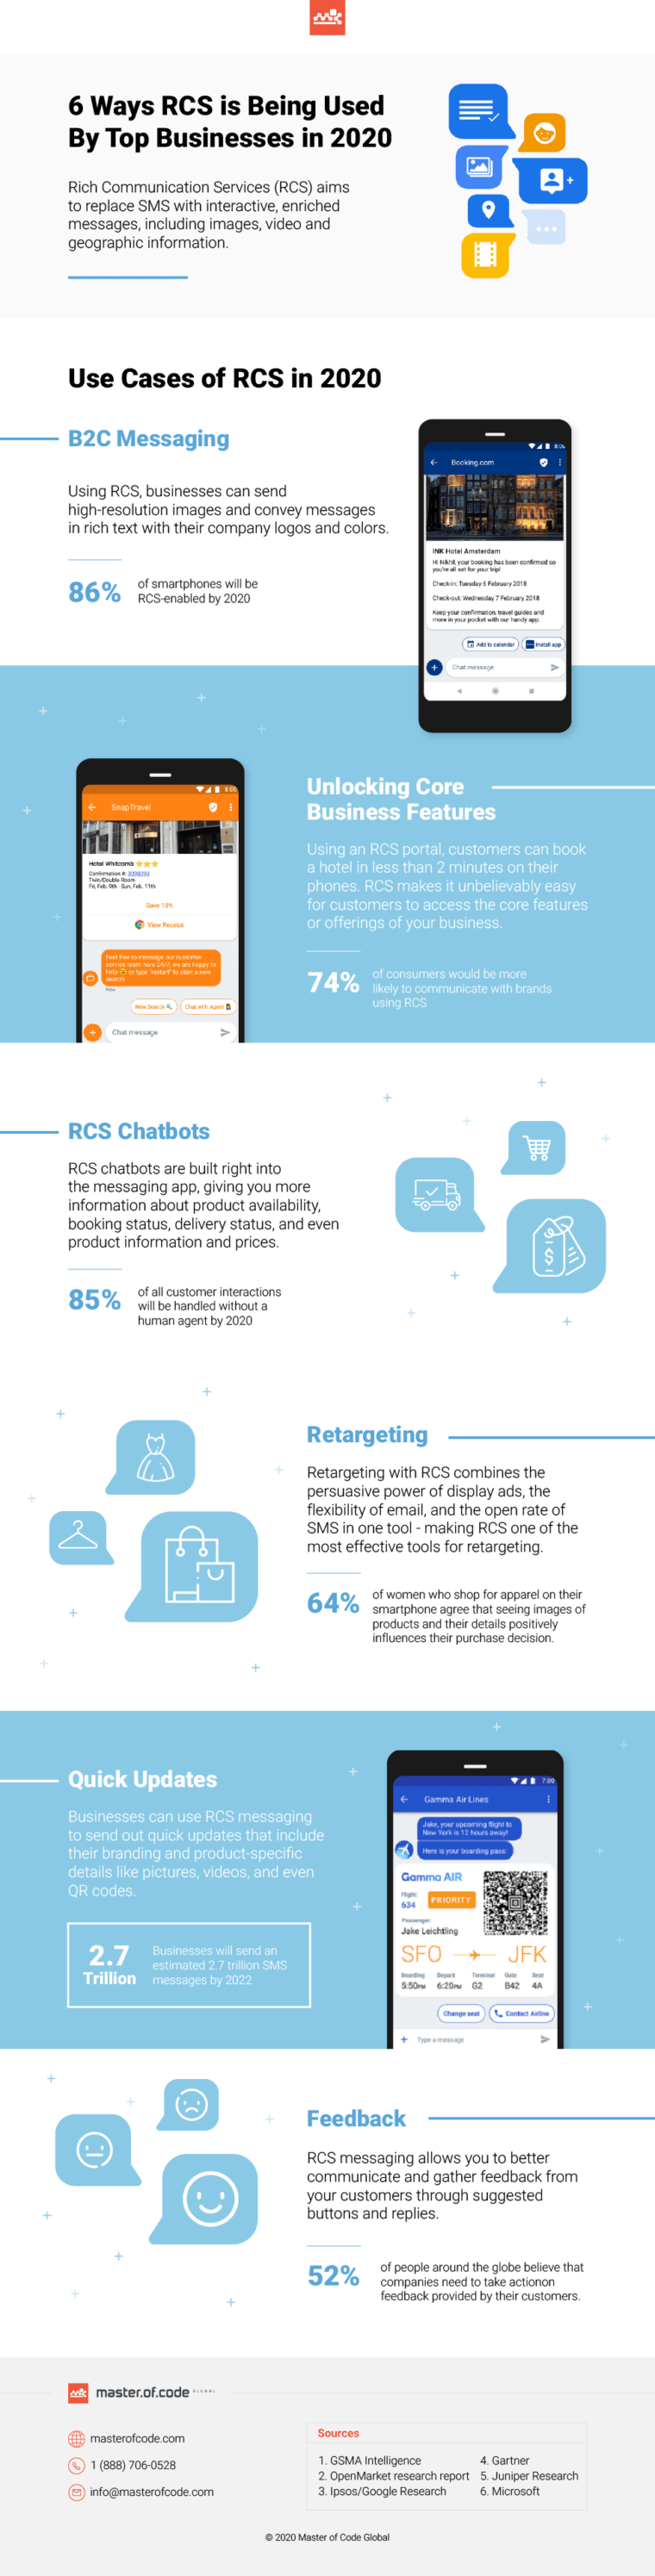 Ways RCS is Being Used By Top Businesses